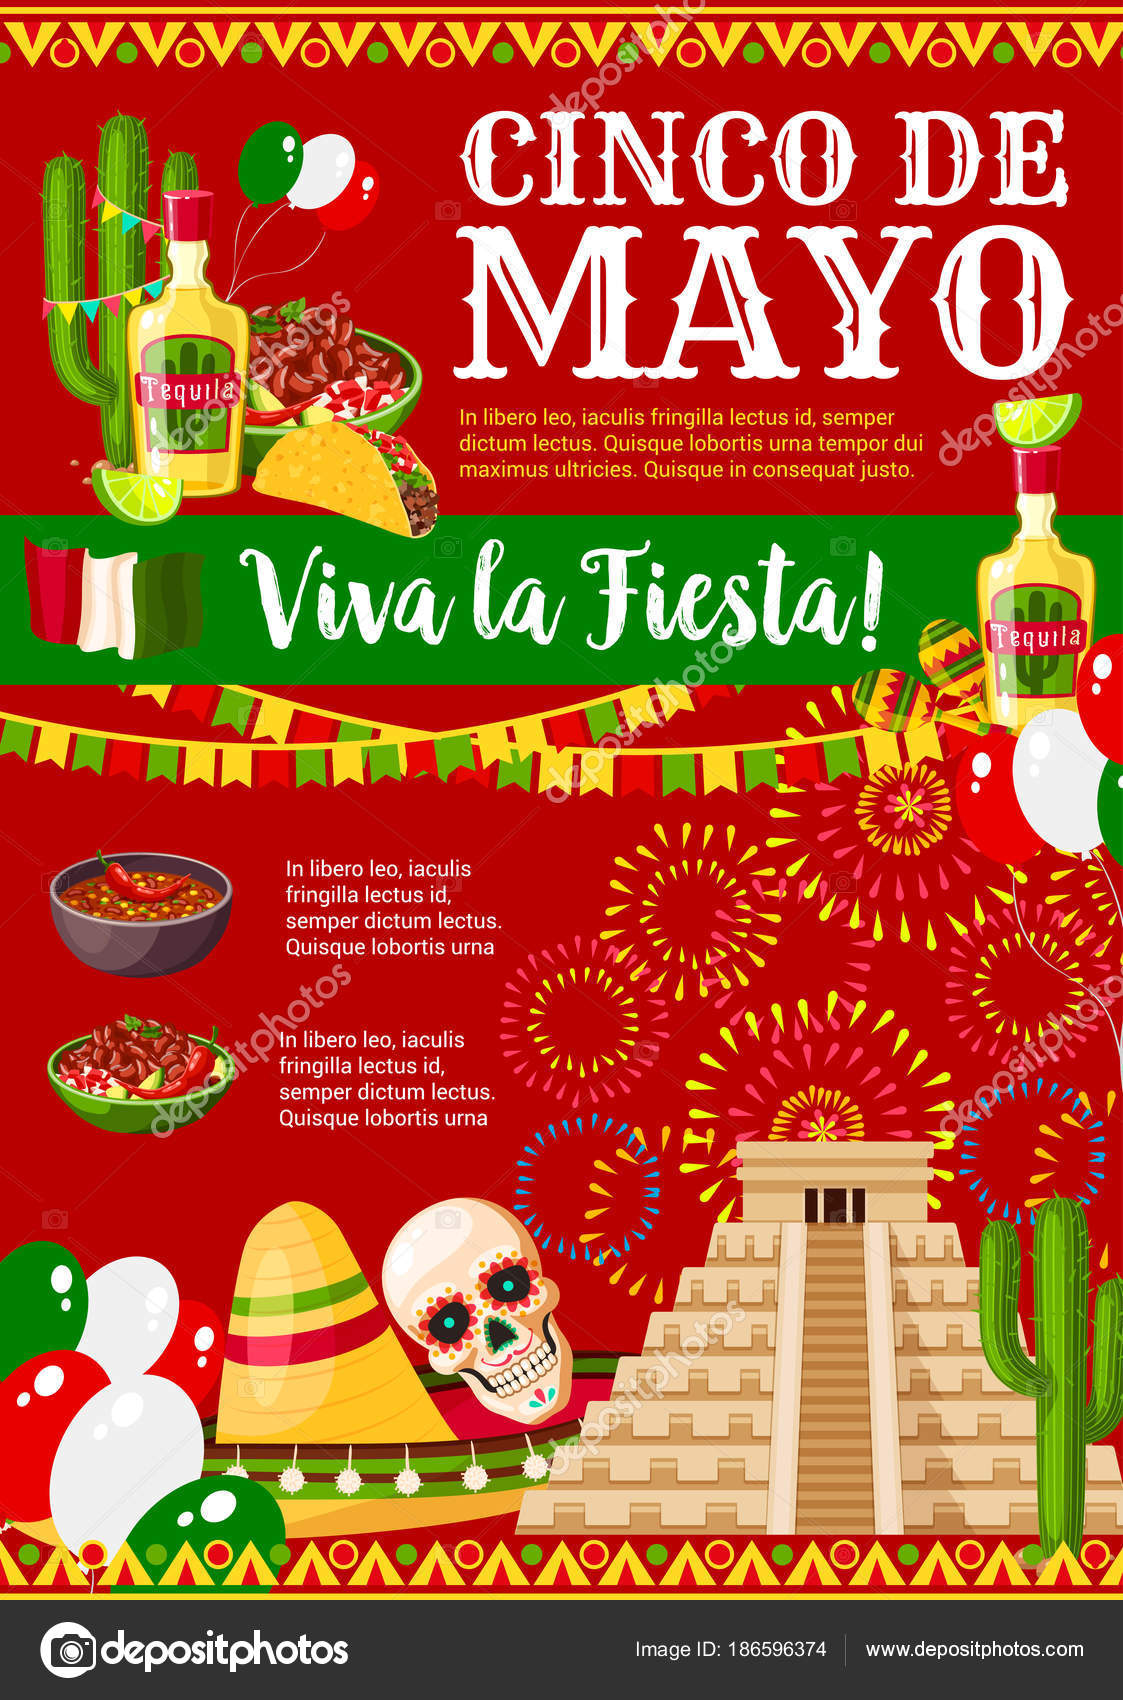 Cinco de mayo mexican vector greeting card stock vector cinco de mayo greeting card for mexican holiday fiesta party celebration of traditional symbols jalapeno pepper sombrero and tequila or skull m4hsunfo Image collections